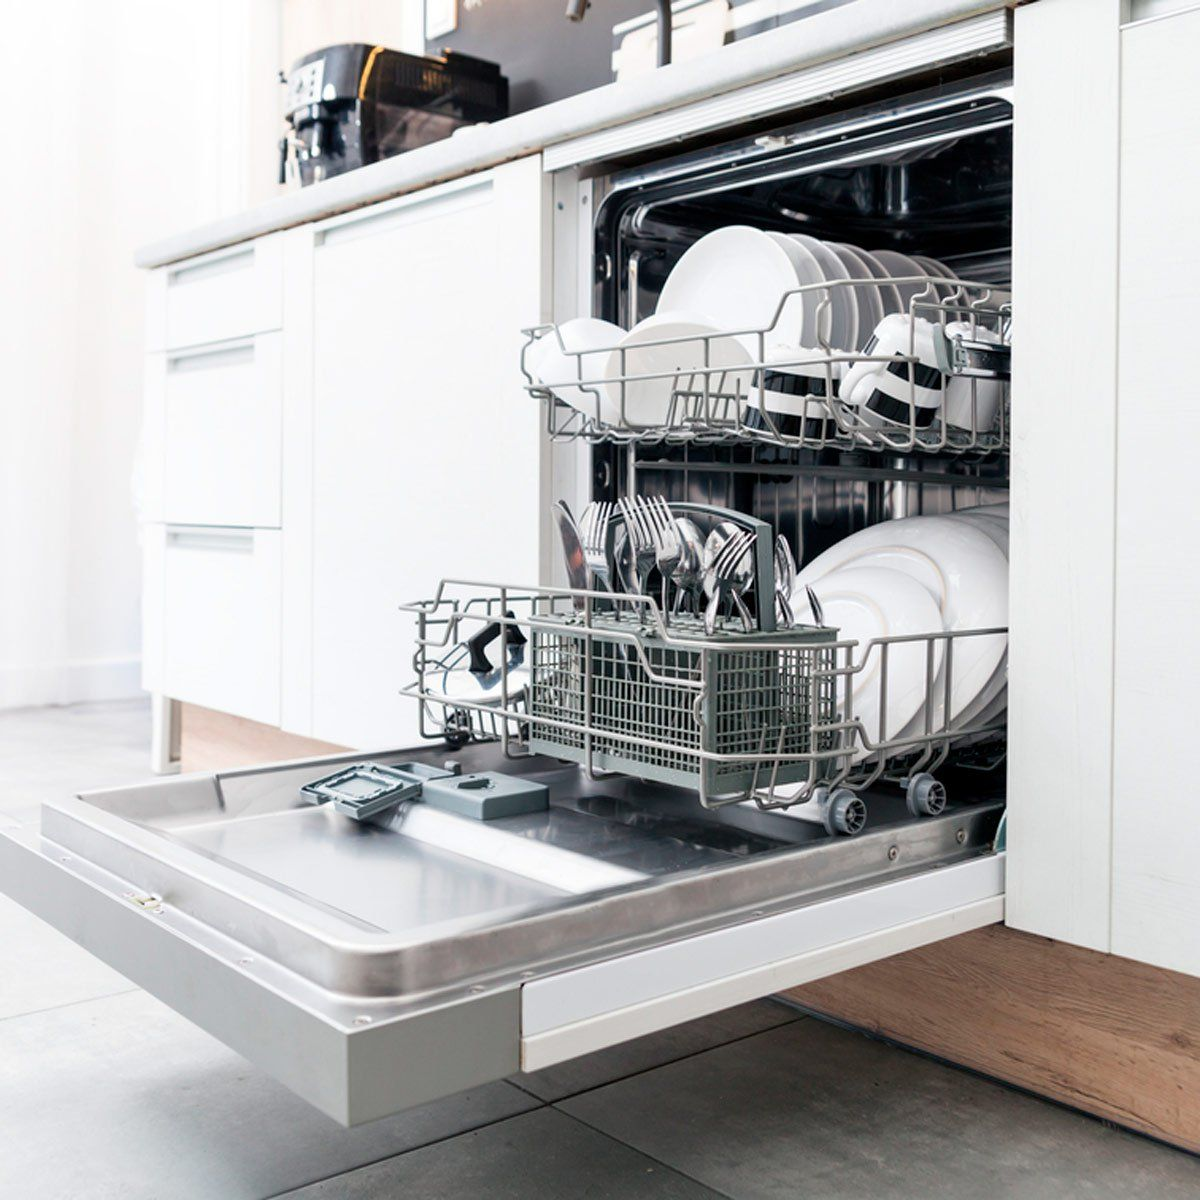 You Should Always Add This One Ingredient To Your Dishwasher Cleaning Dishes Dishwasher Machine Washing Dishes